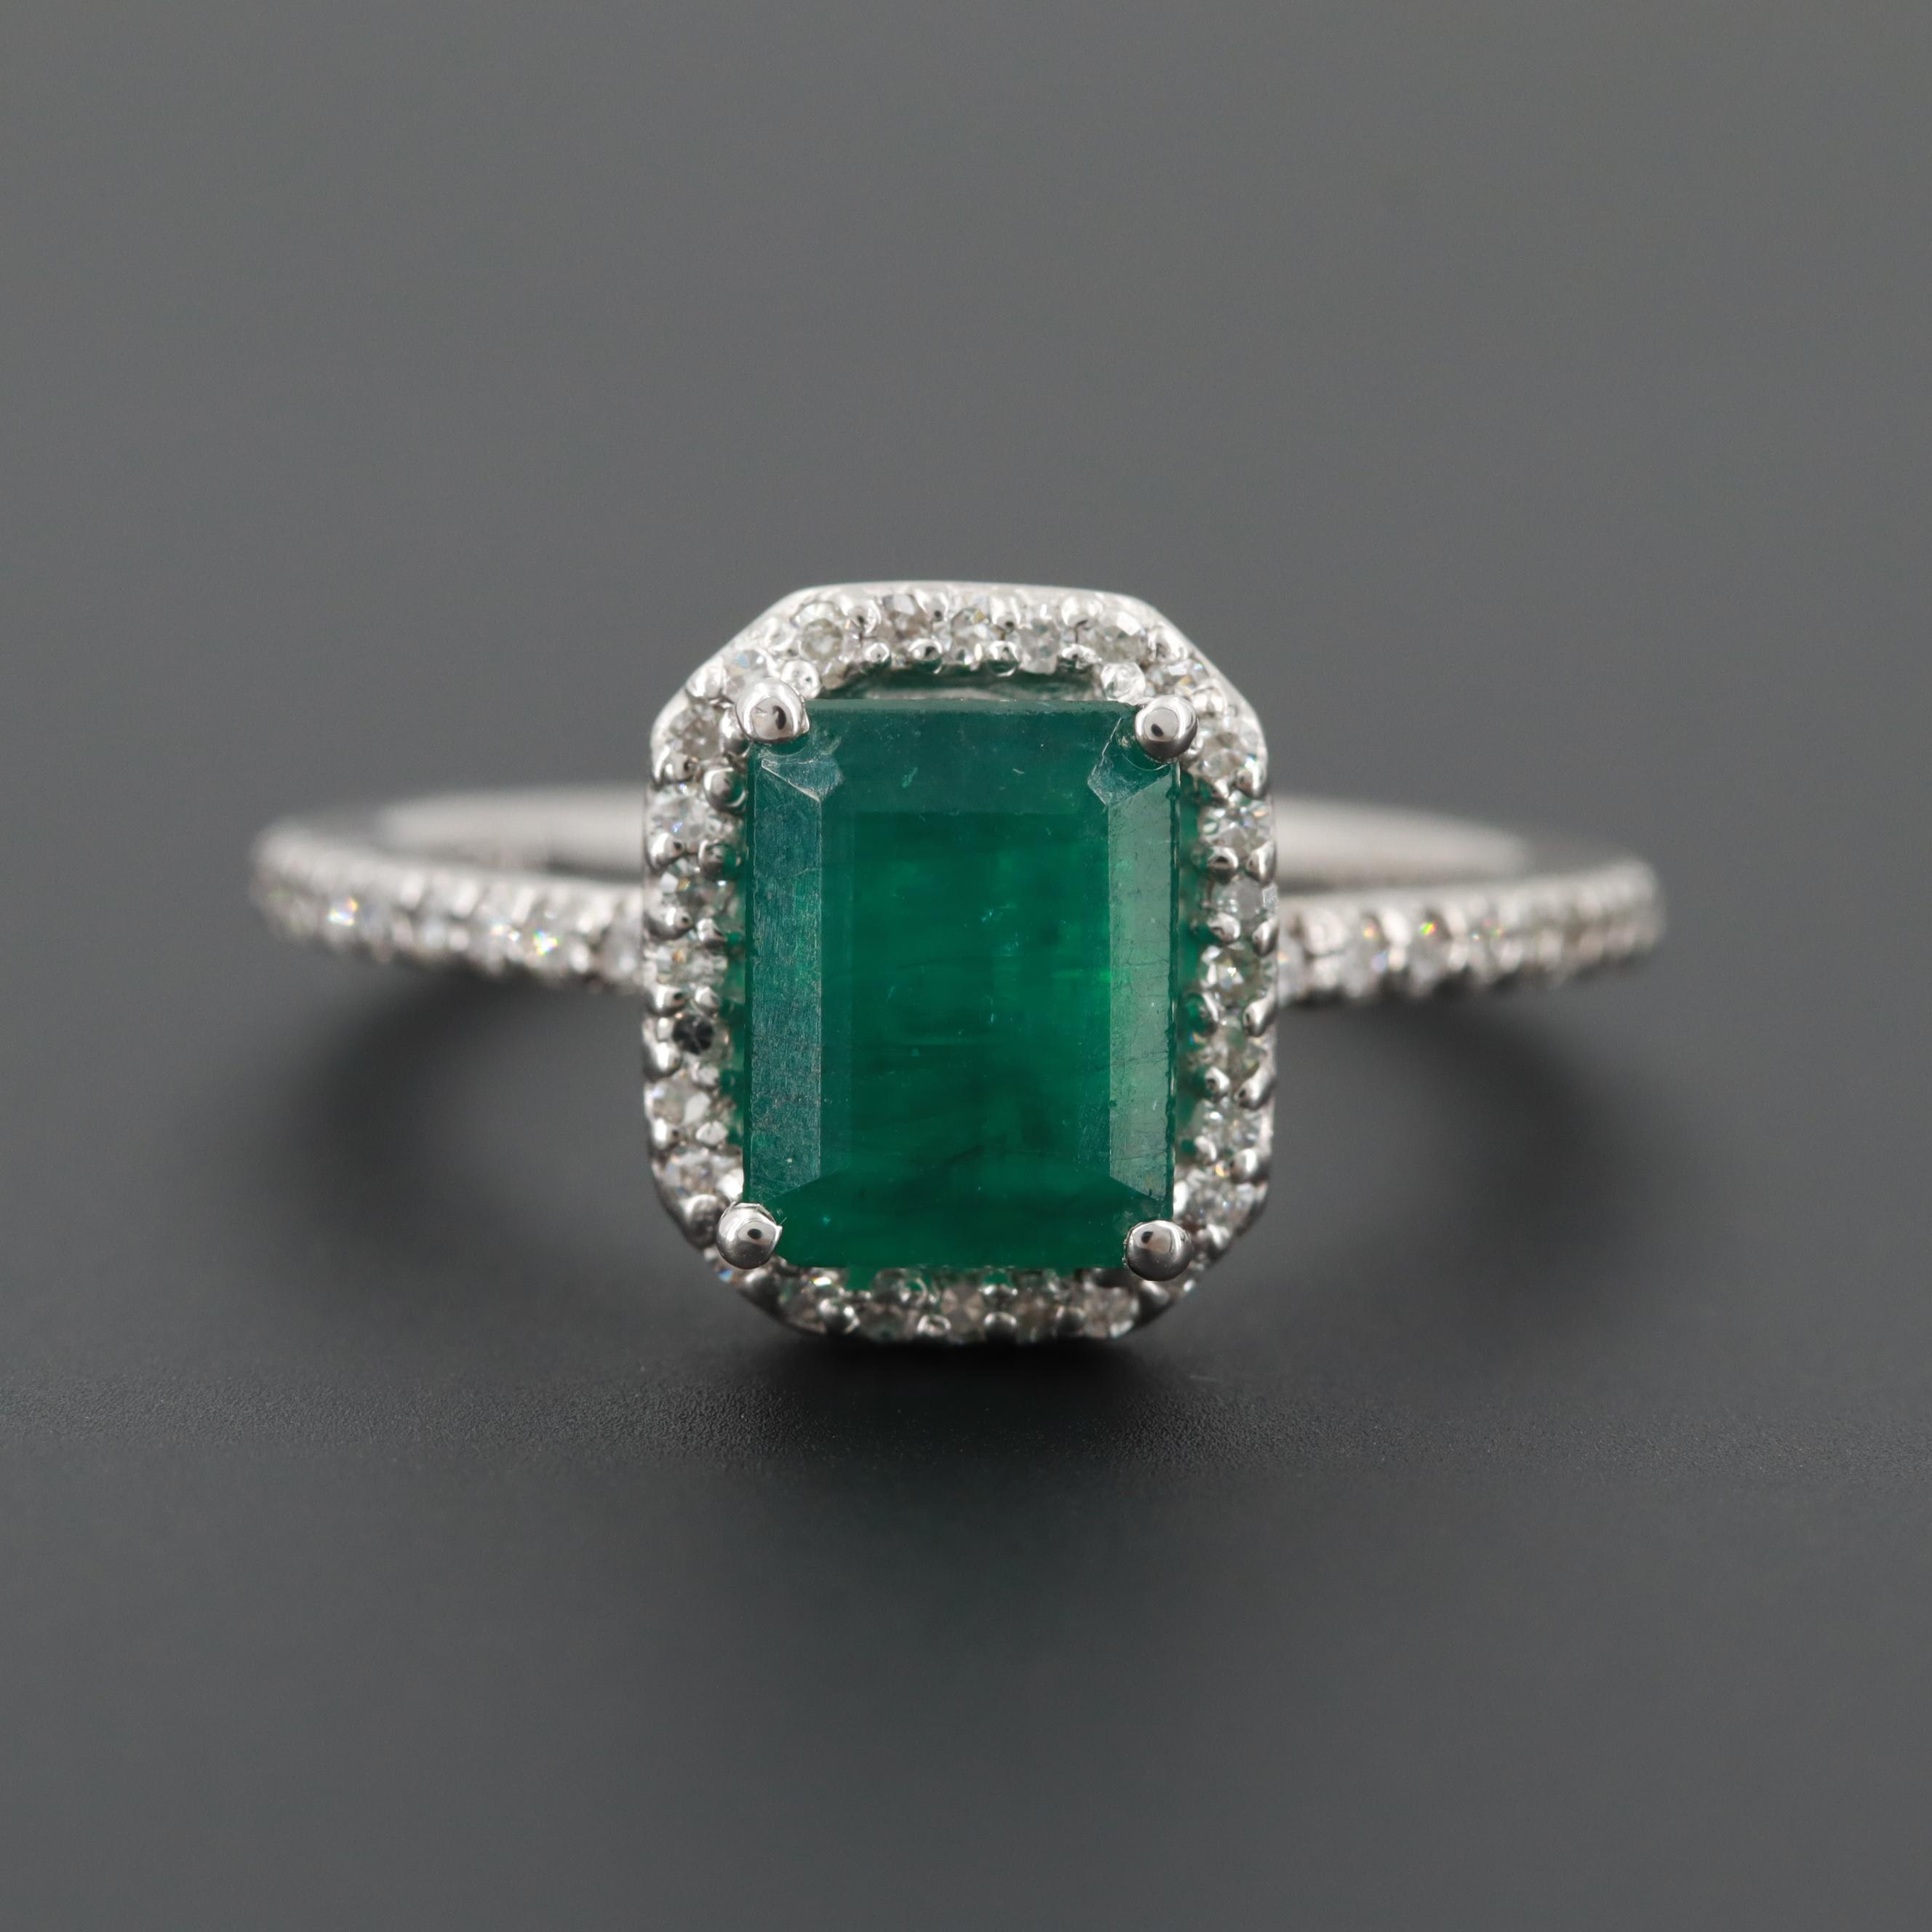 14K White Gold 1.40 CT Emerald and Diamond Ring